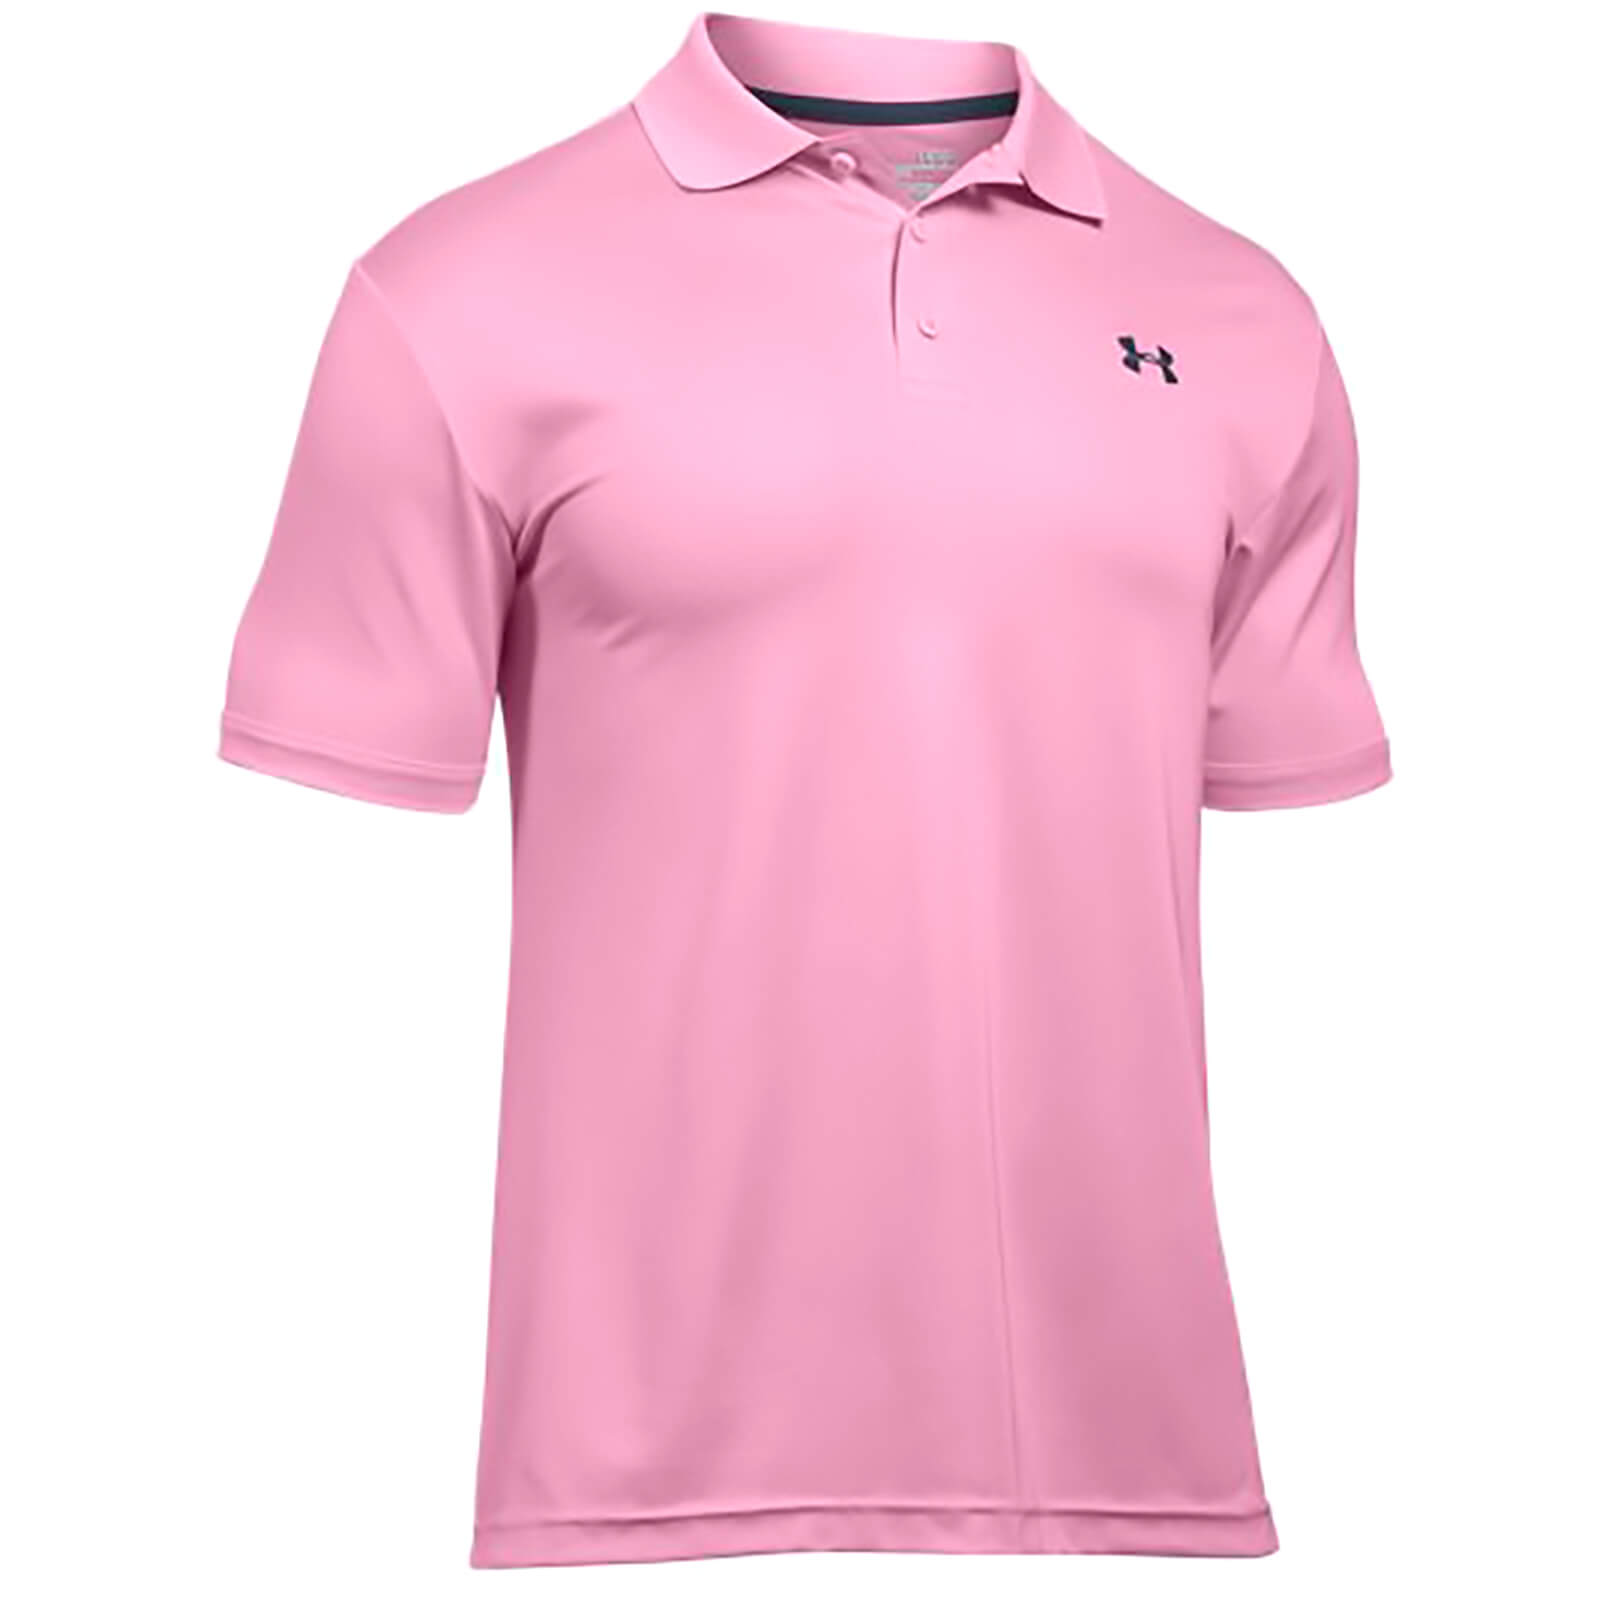 Pelearse Habitar Brillar  under armour pink polo shirt Online Shopping for Women, Men, Kids Fashion &  Lifestyle|Free Delivery & Returns! -